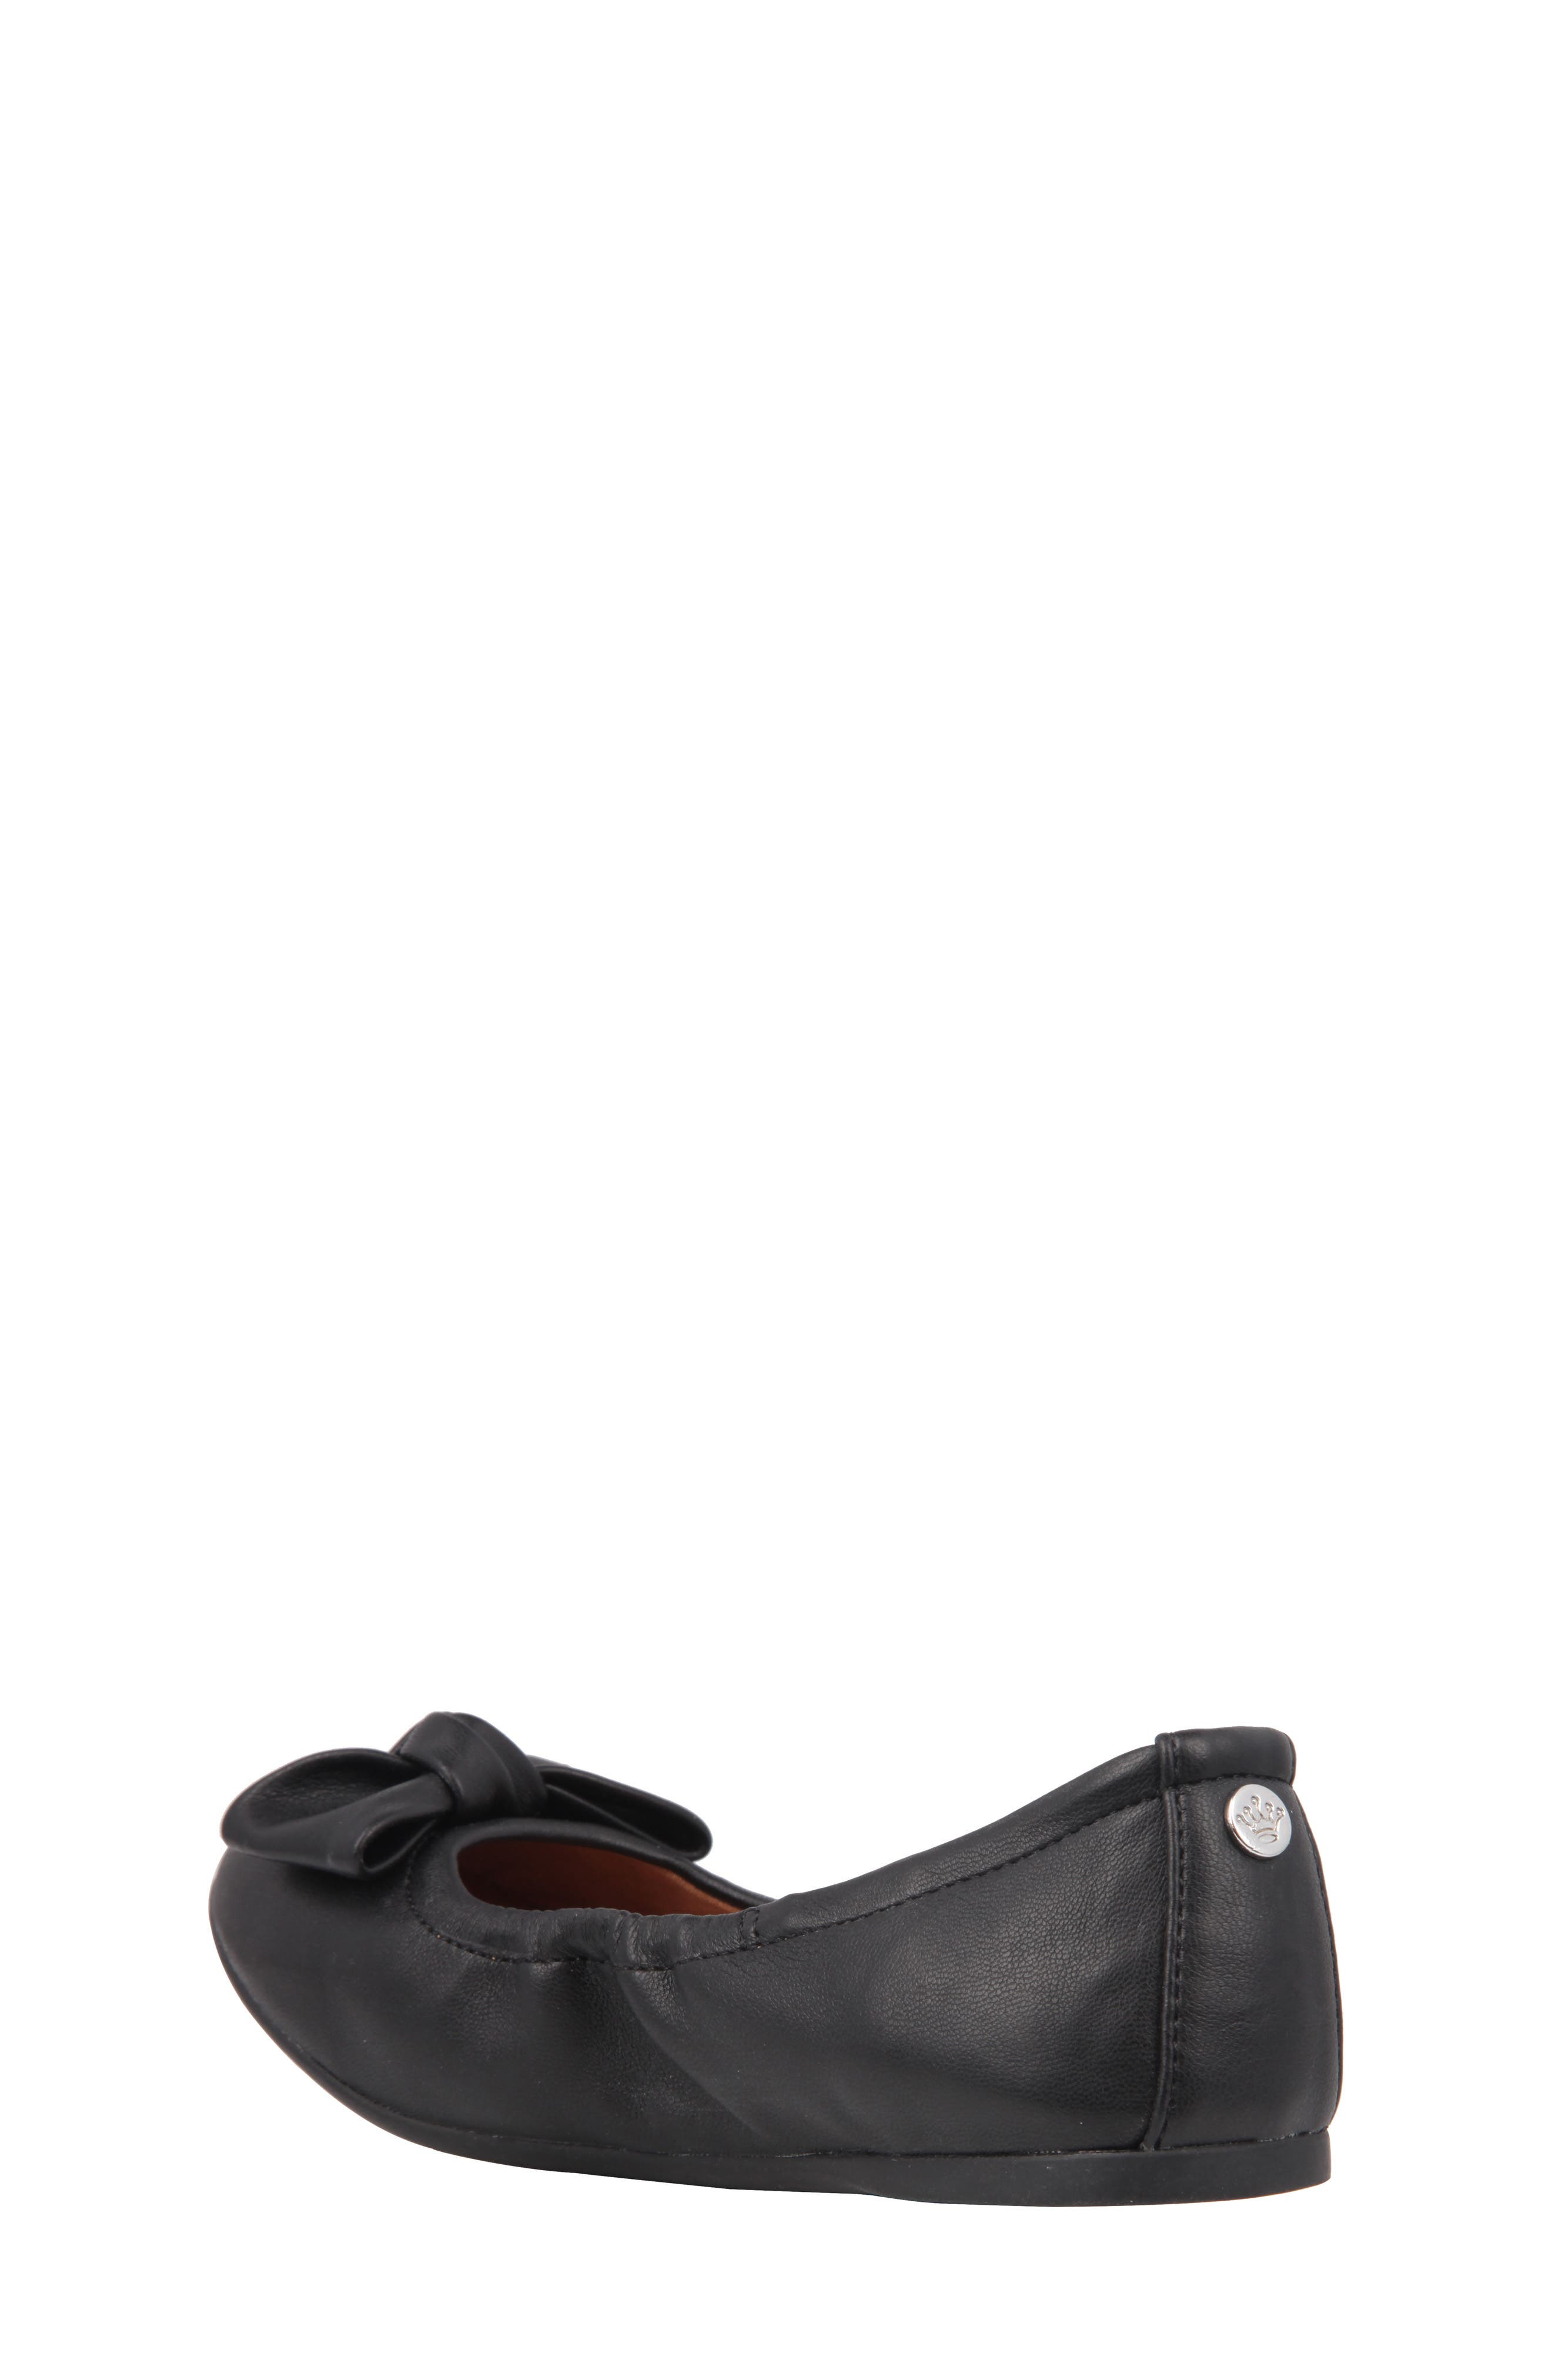 Karla Bow Ballet Flat,                             Alternate thumbnail 2, color,                             Black Smooth Leather